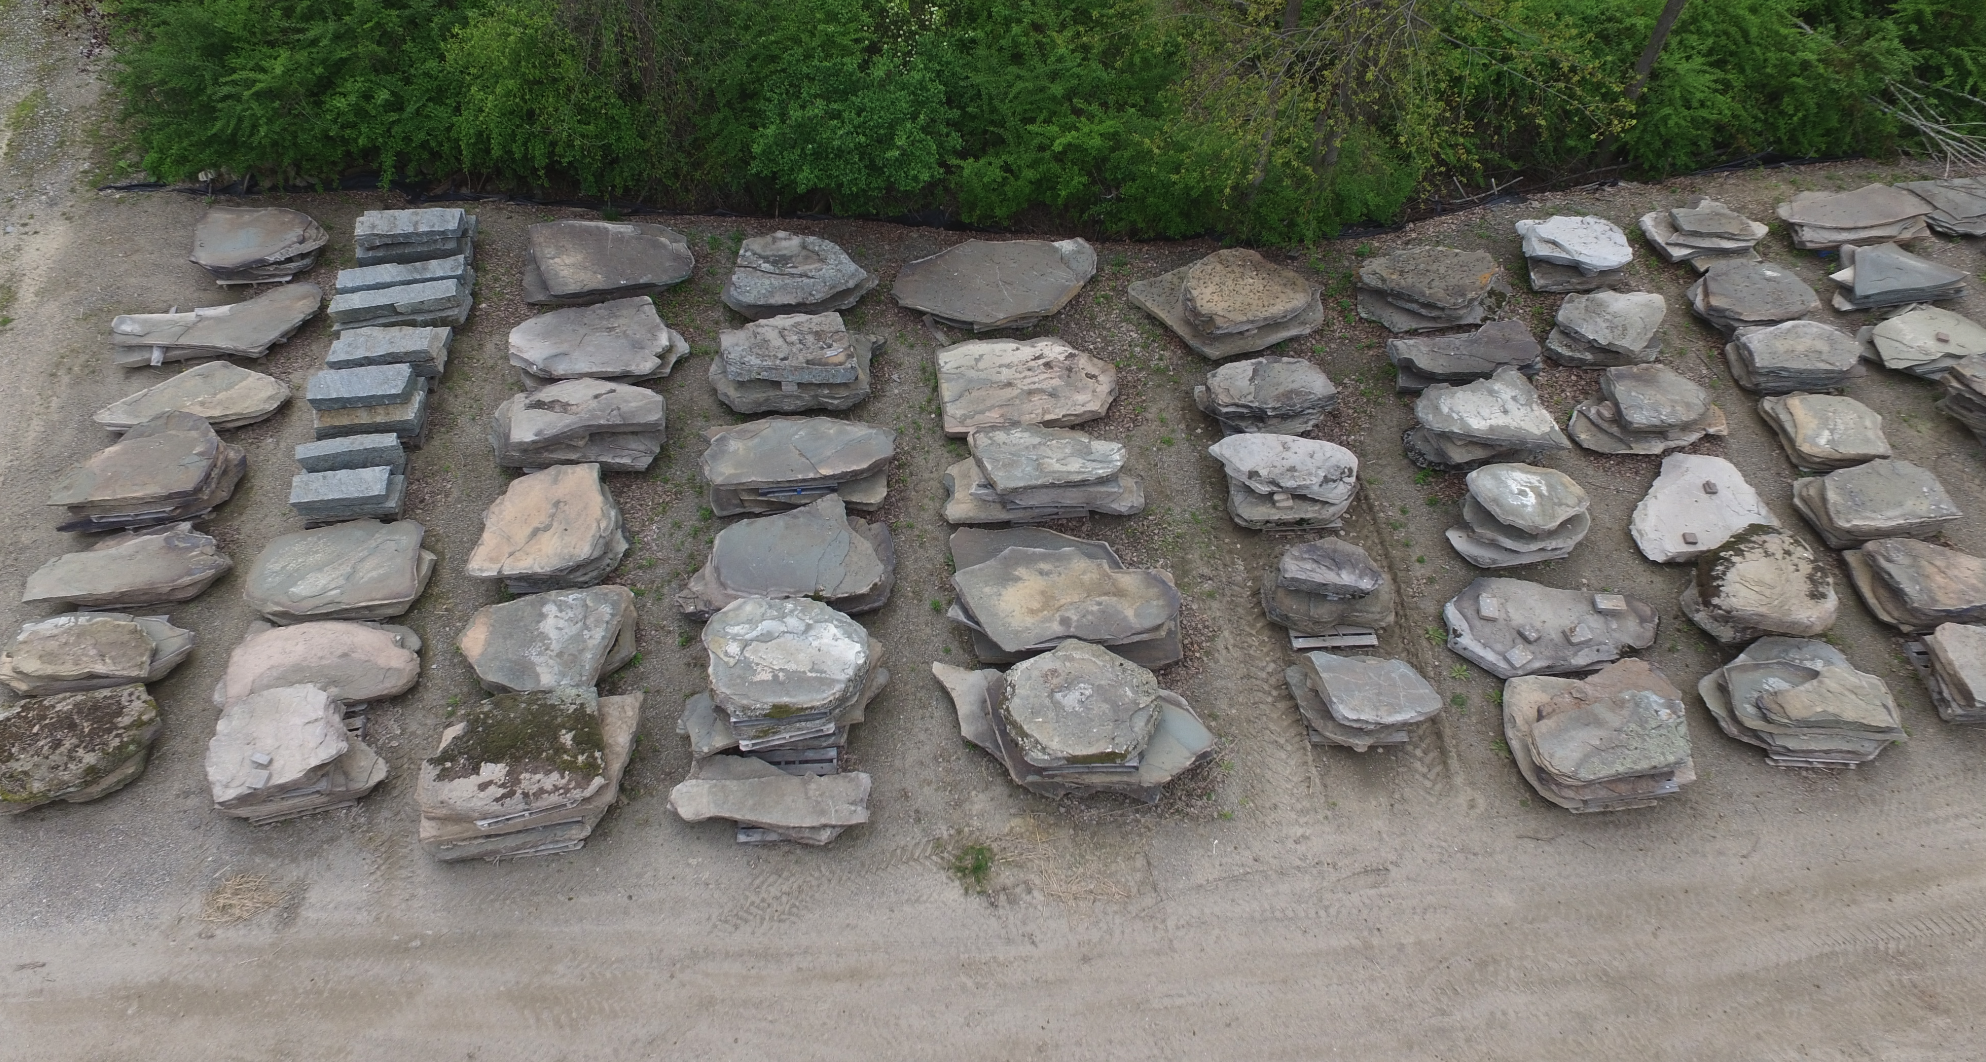 Expert stone supply company in Sussex County, NJ